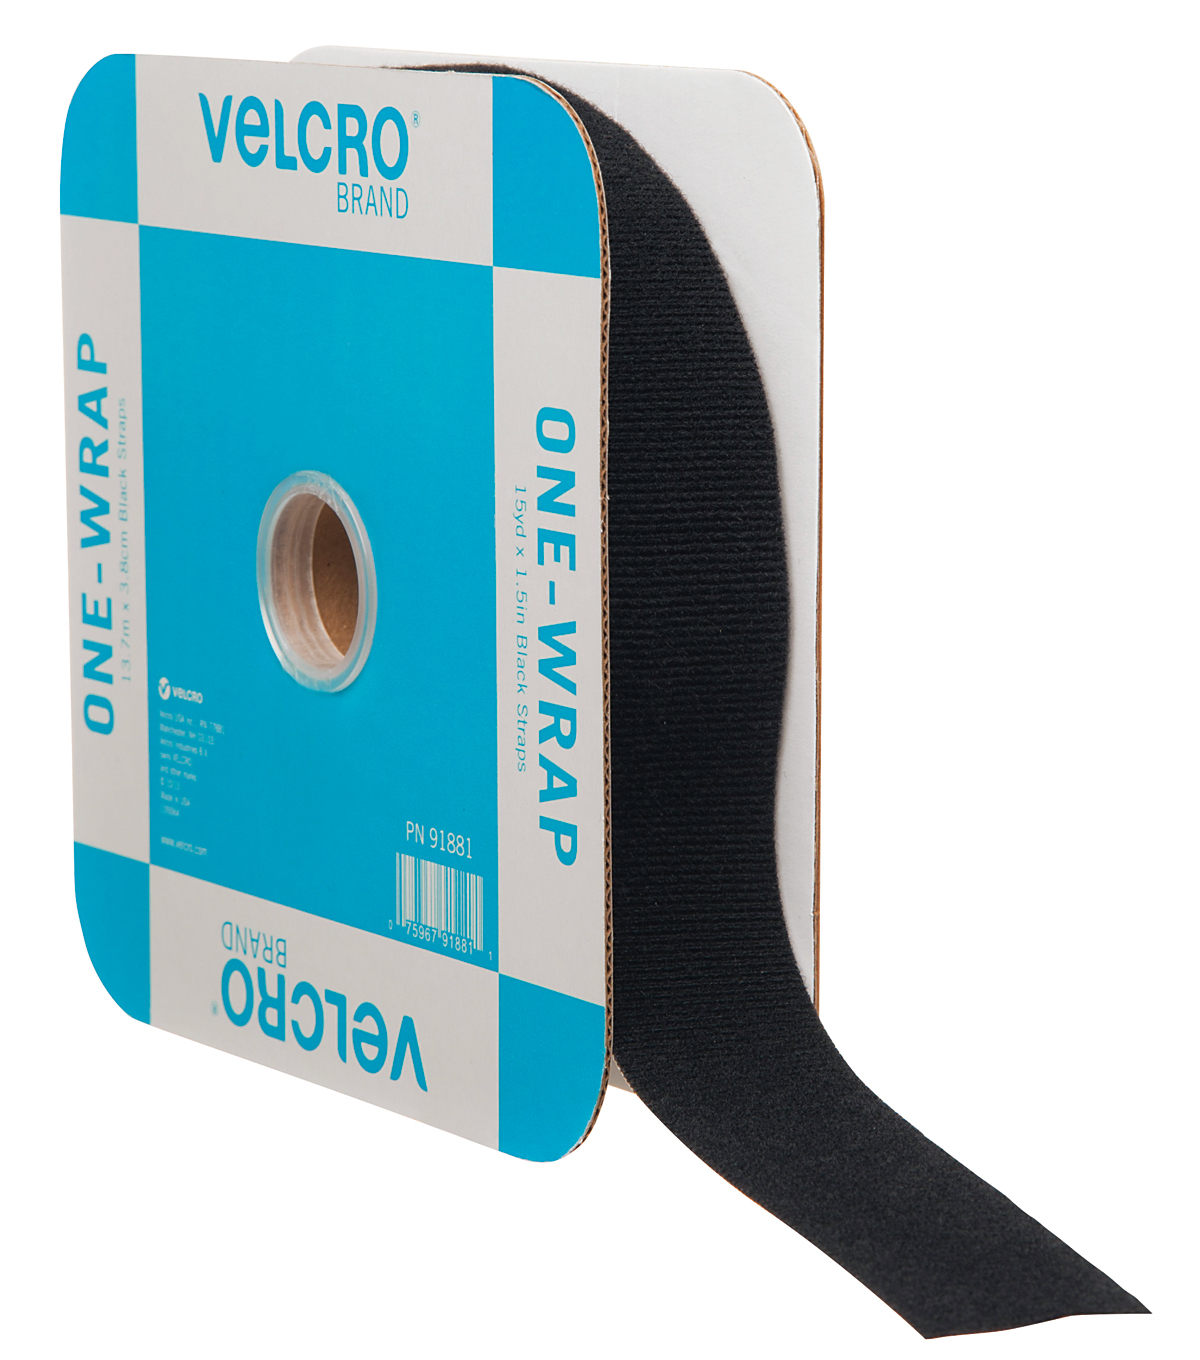 VELCRO Brand ONE-WRAP Roll 45ft x 1 1/2in Tape, Black, Flange